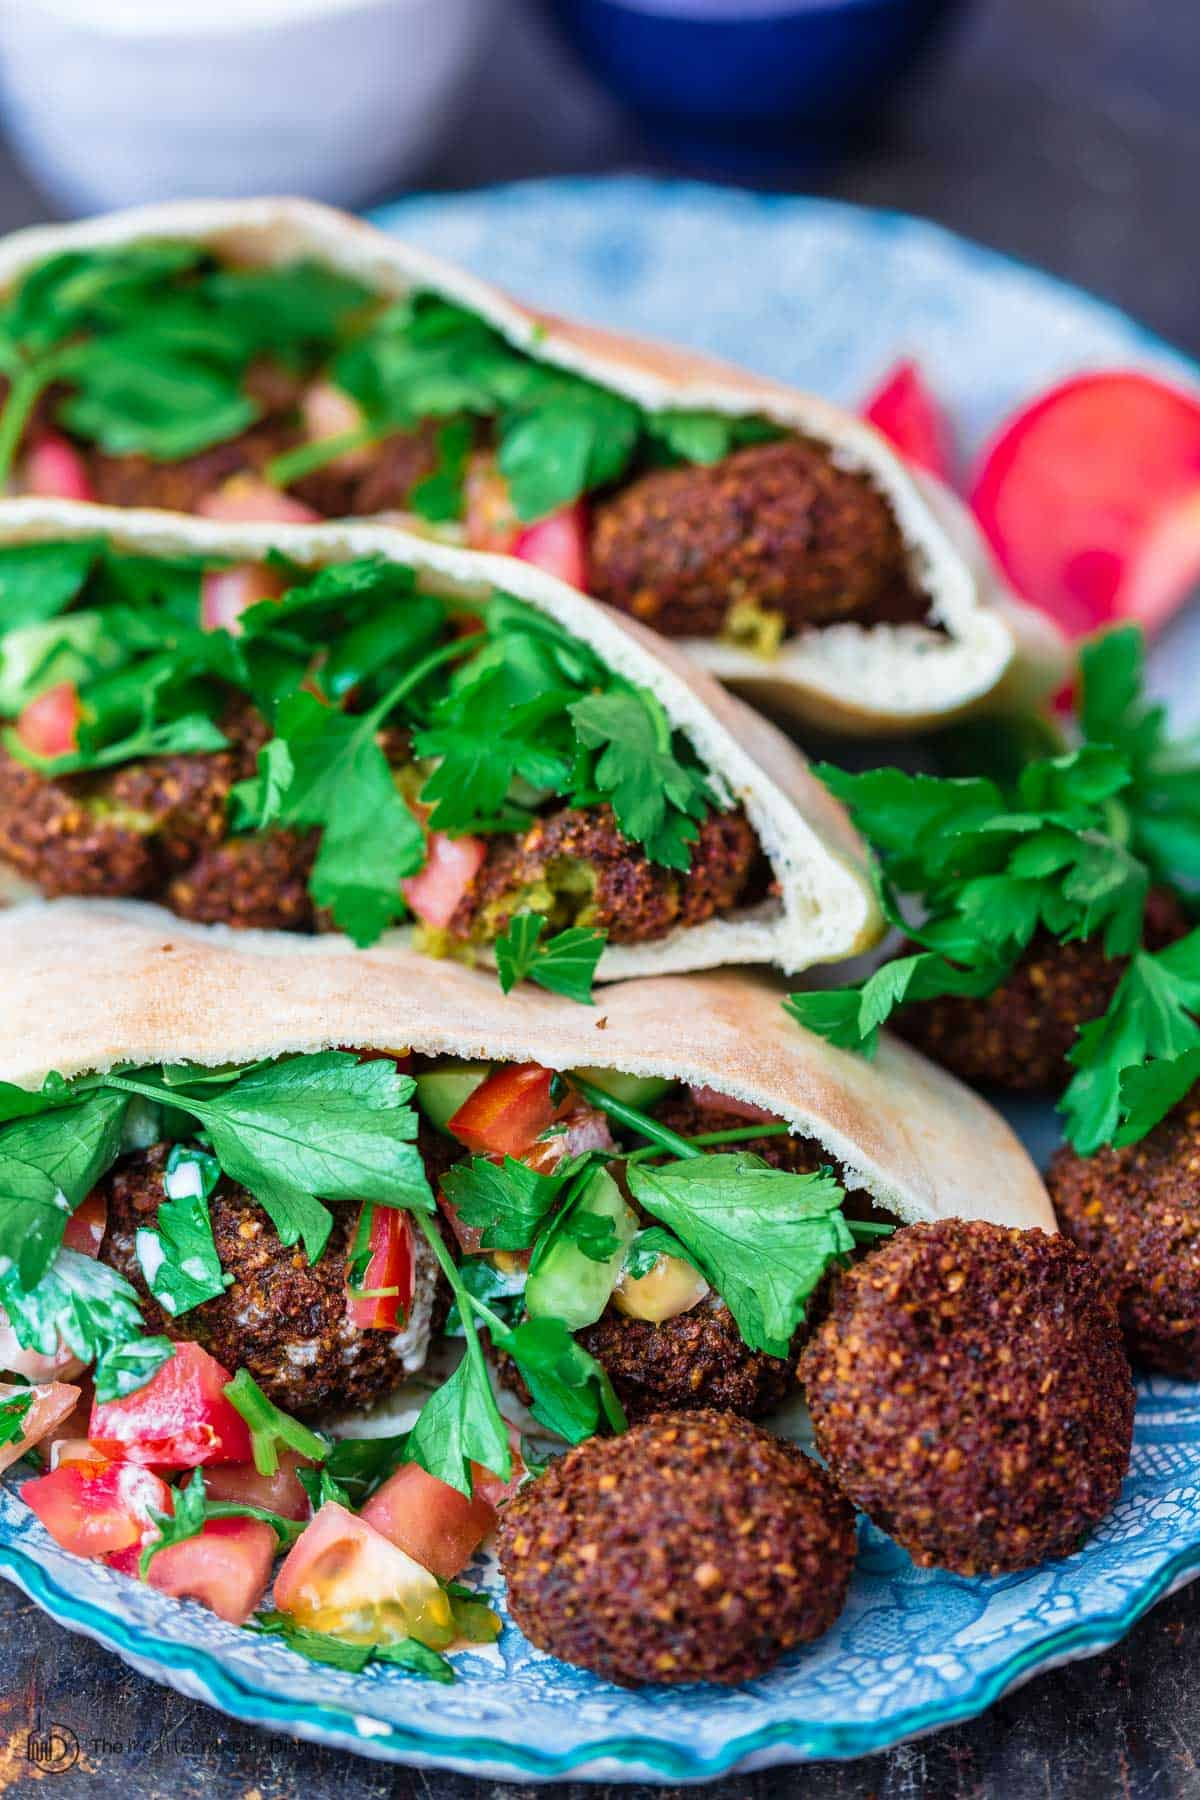 Falafel in pit pockets with garden vegetabiles and tahini